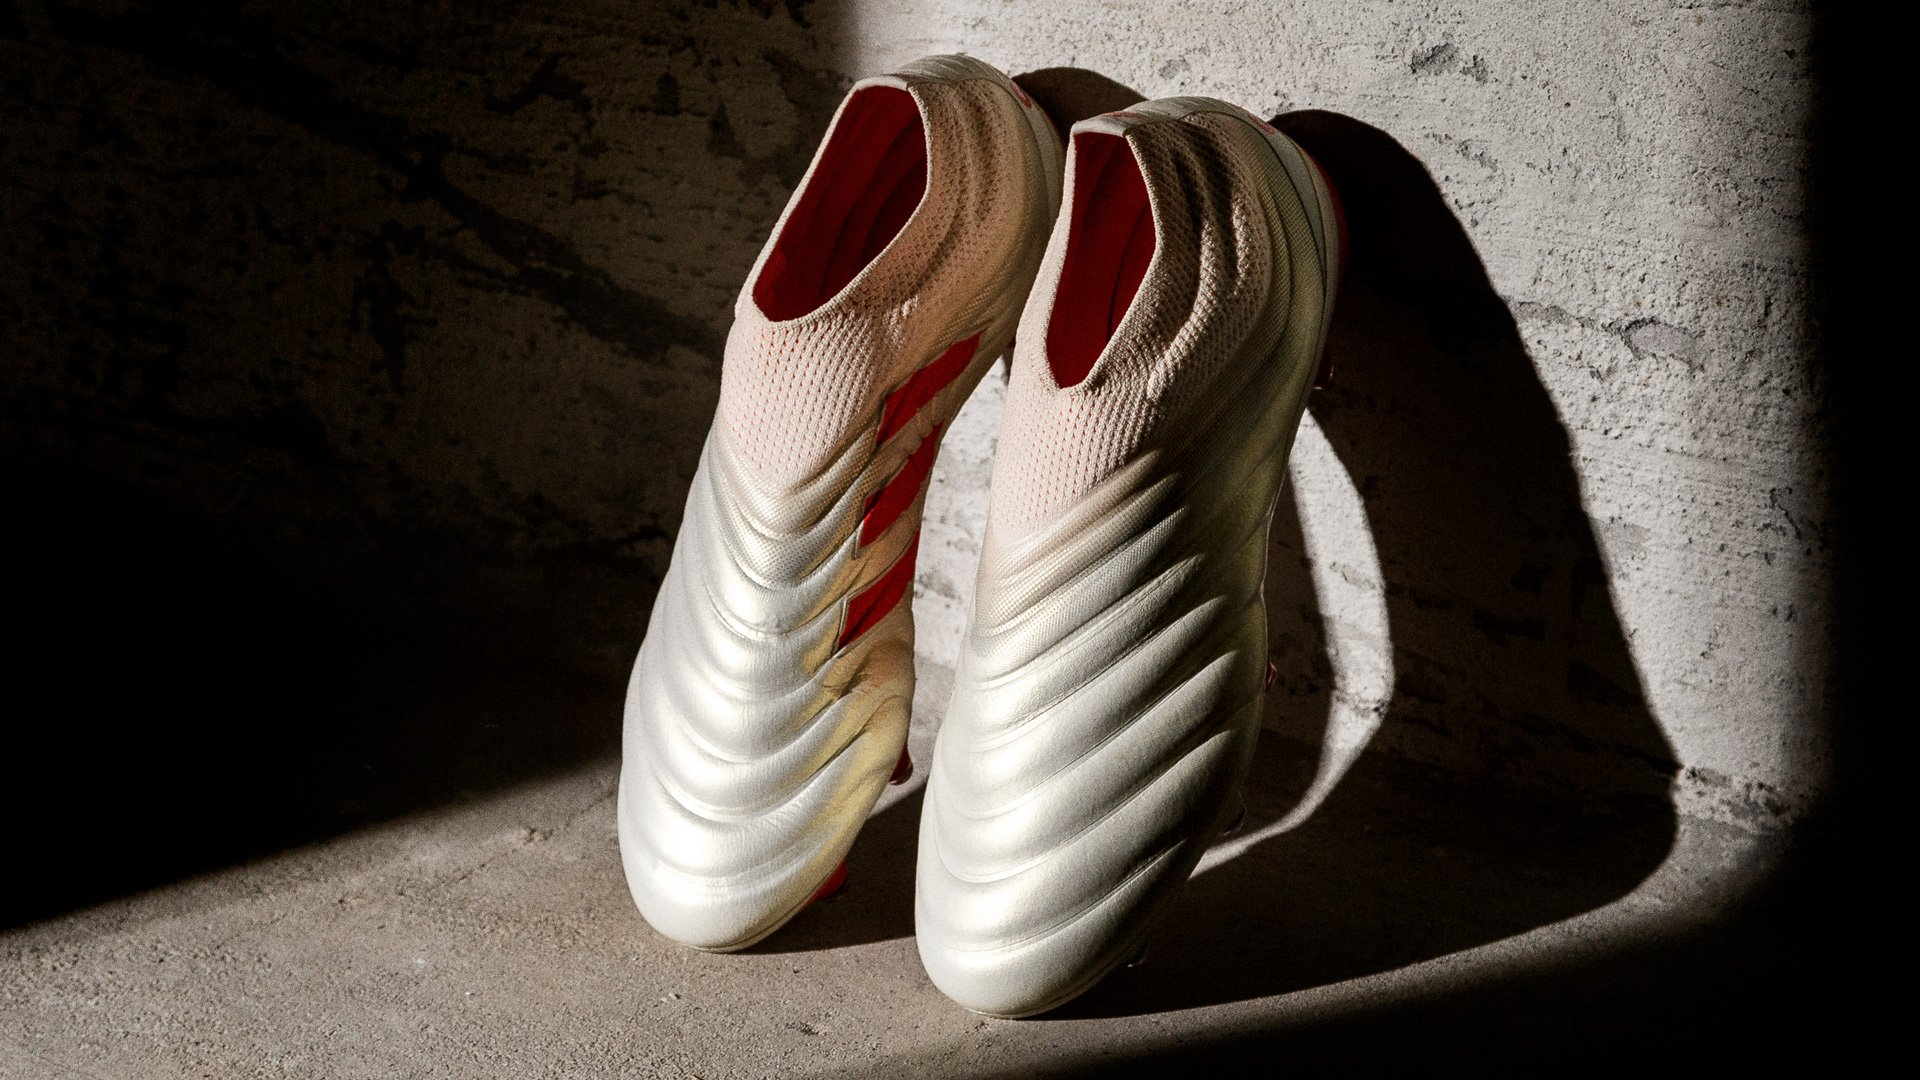 Meet Adidas Copa 19 The First Ever Laceless Leather Boot